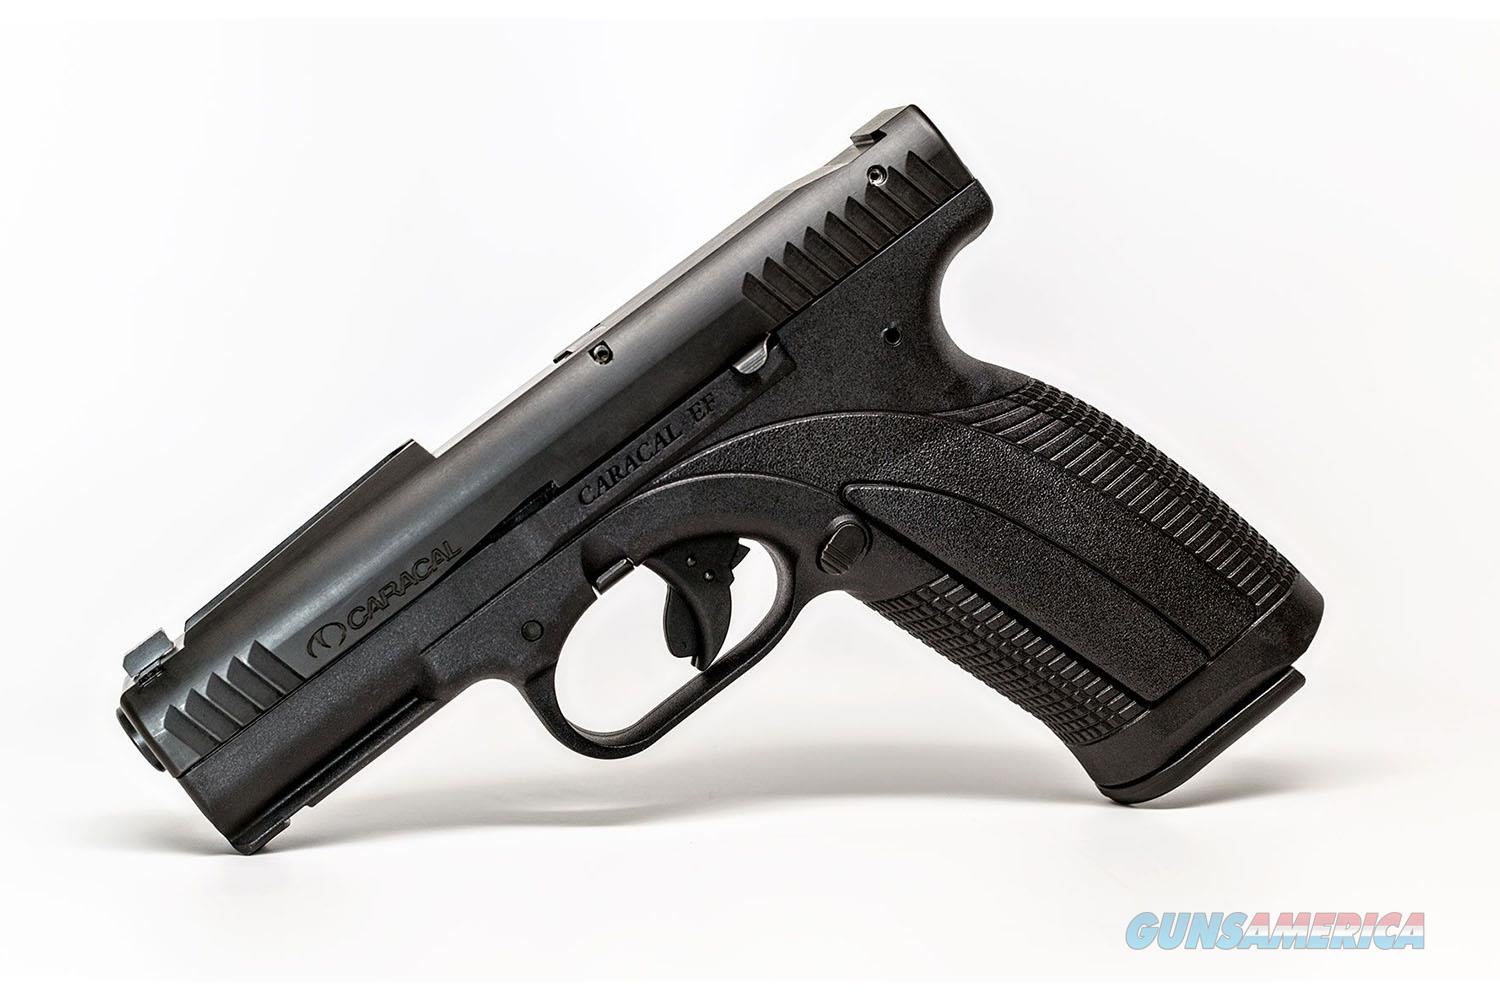 Caracal Enhanced F - Limited Edition Quick Sites  Guns > Pistols > Caracal Pistols > Enhanced F/C